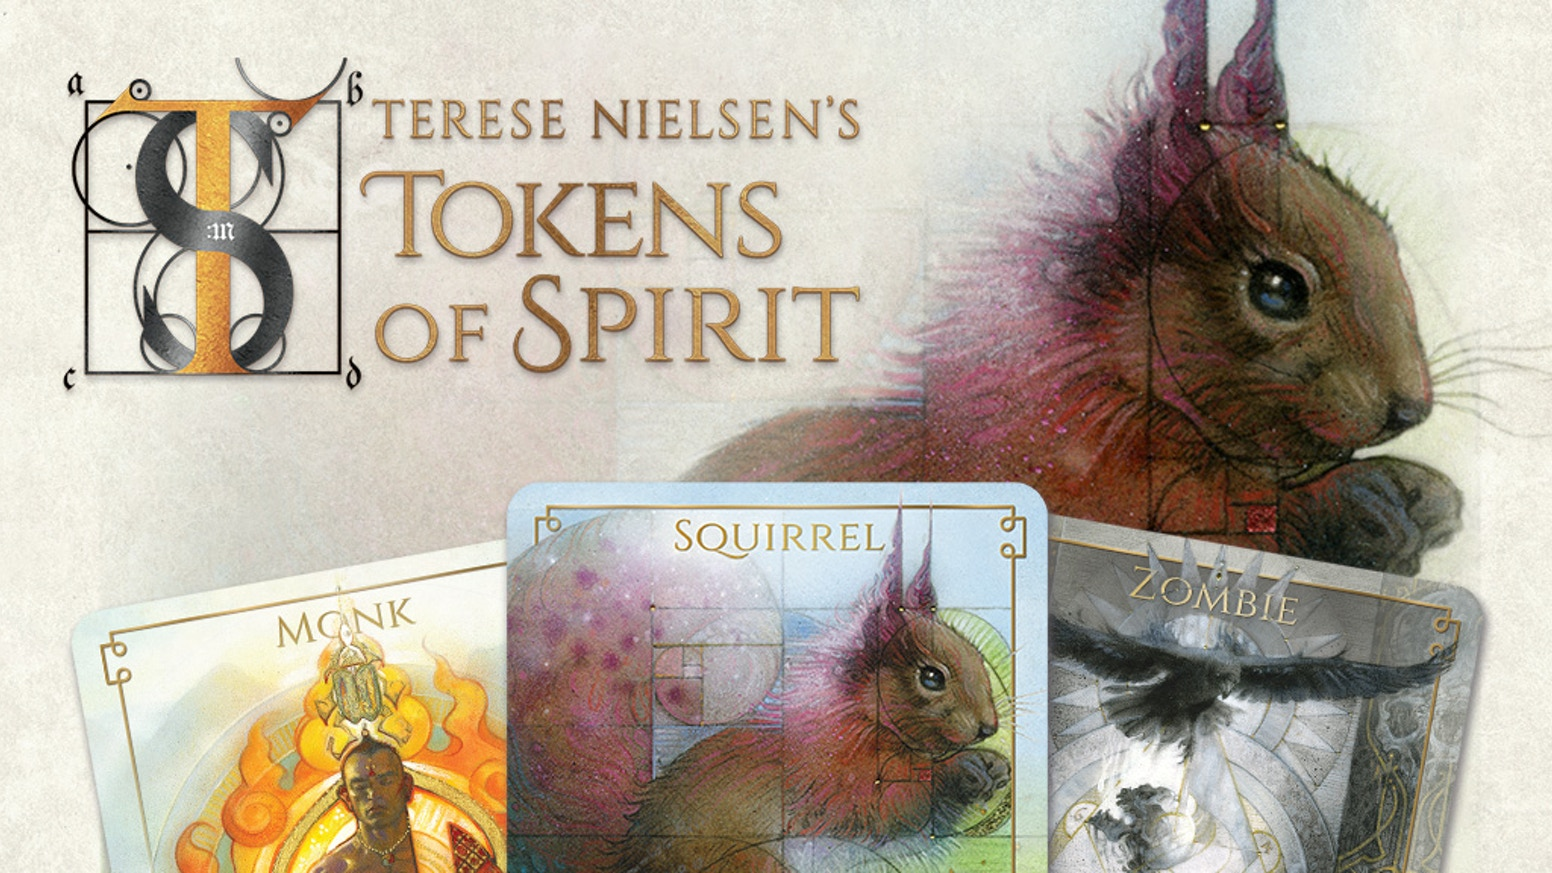 Terese and OMA proudly present a collection of unique Tokens, Playmats, and Prints with amazing new art designed for Magic players